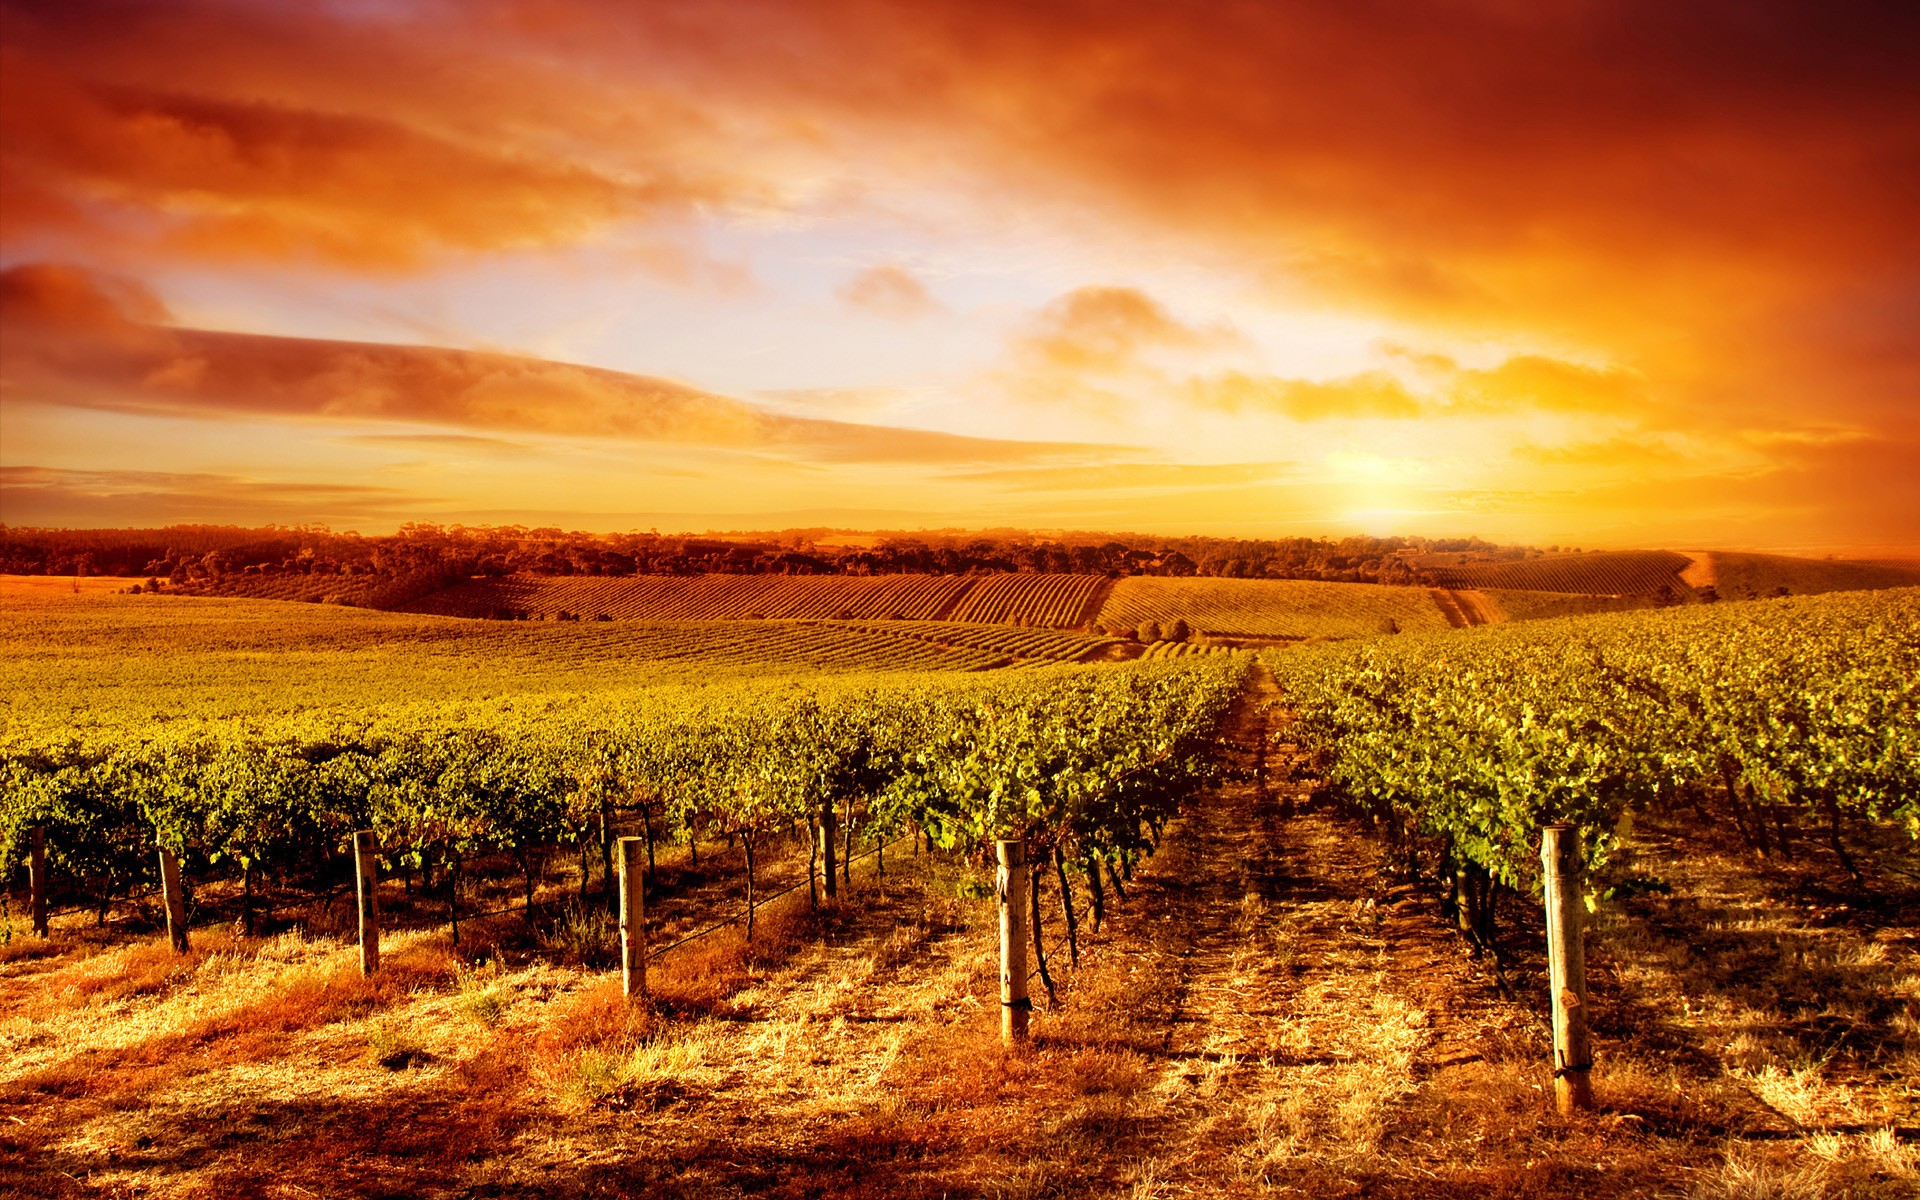 91 Vineyard Hd Wallpapers  Backgrounds  Wallpaper Abyss